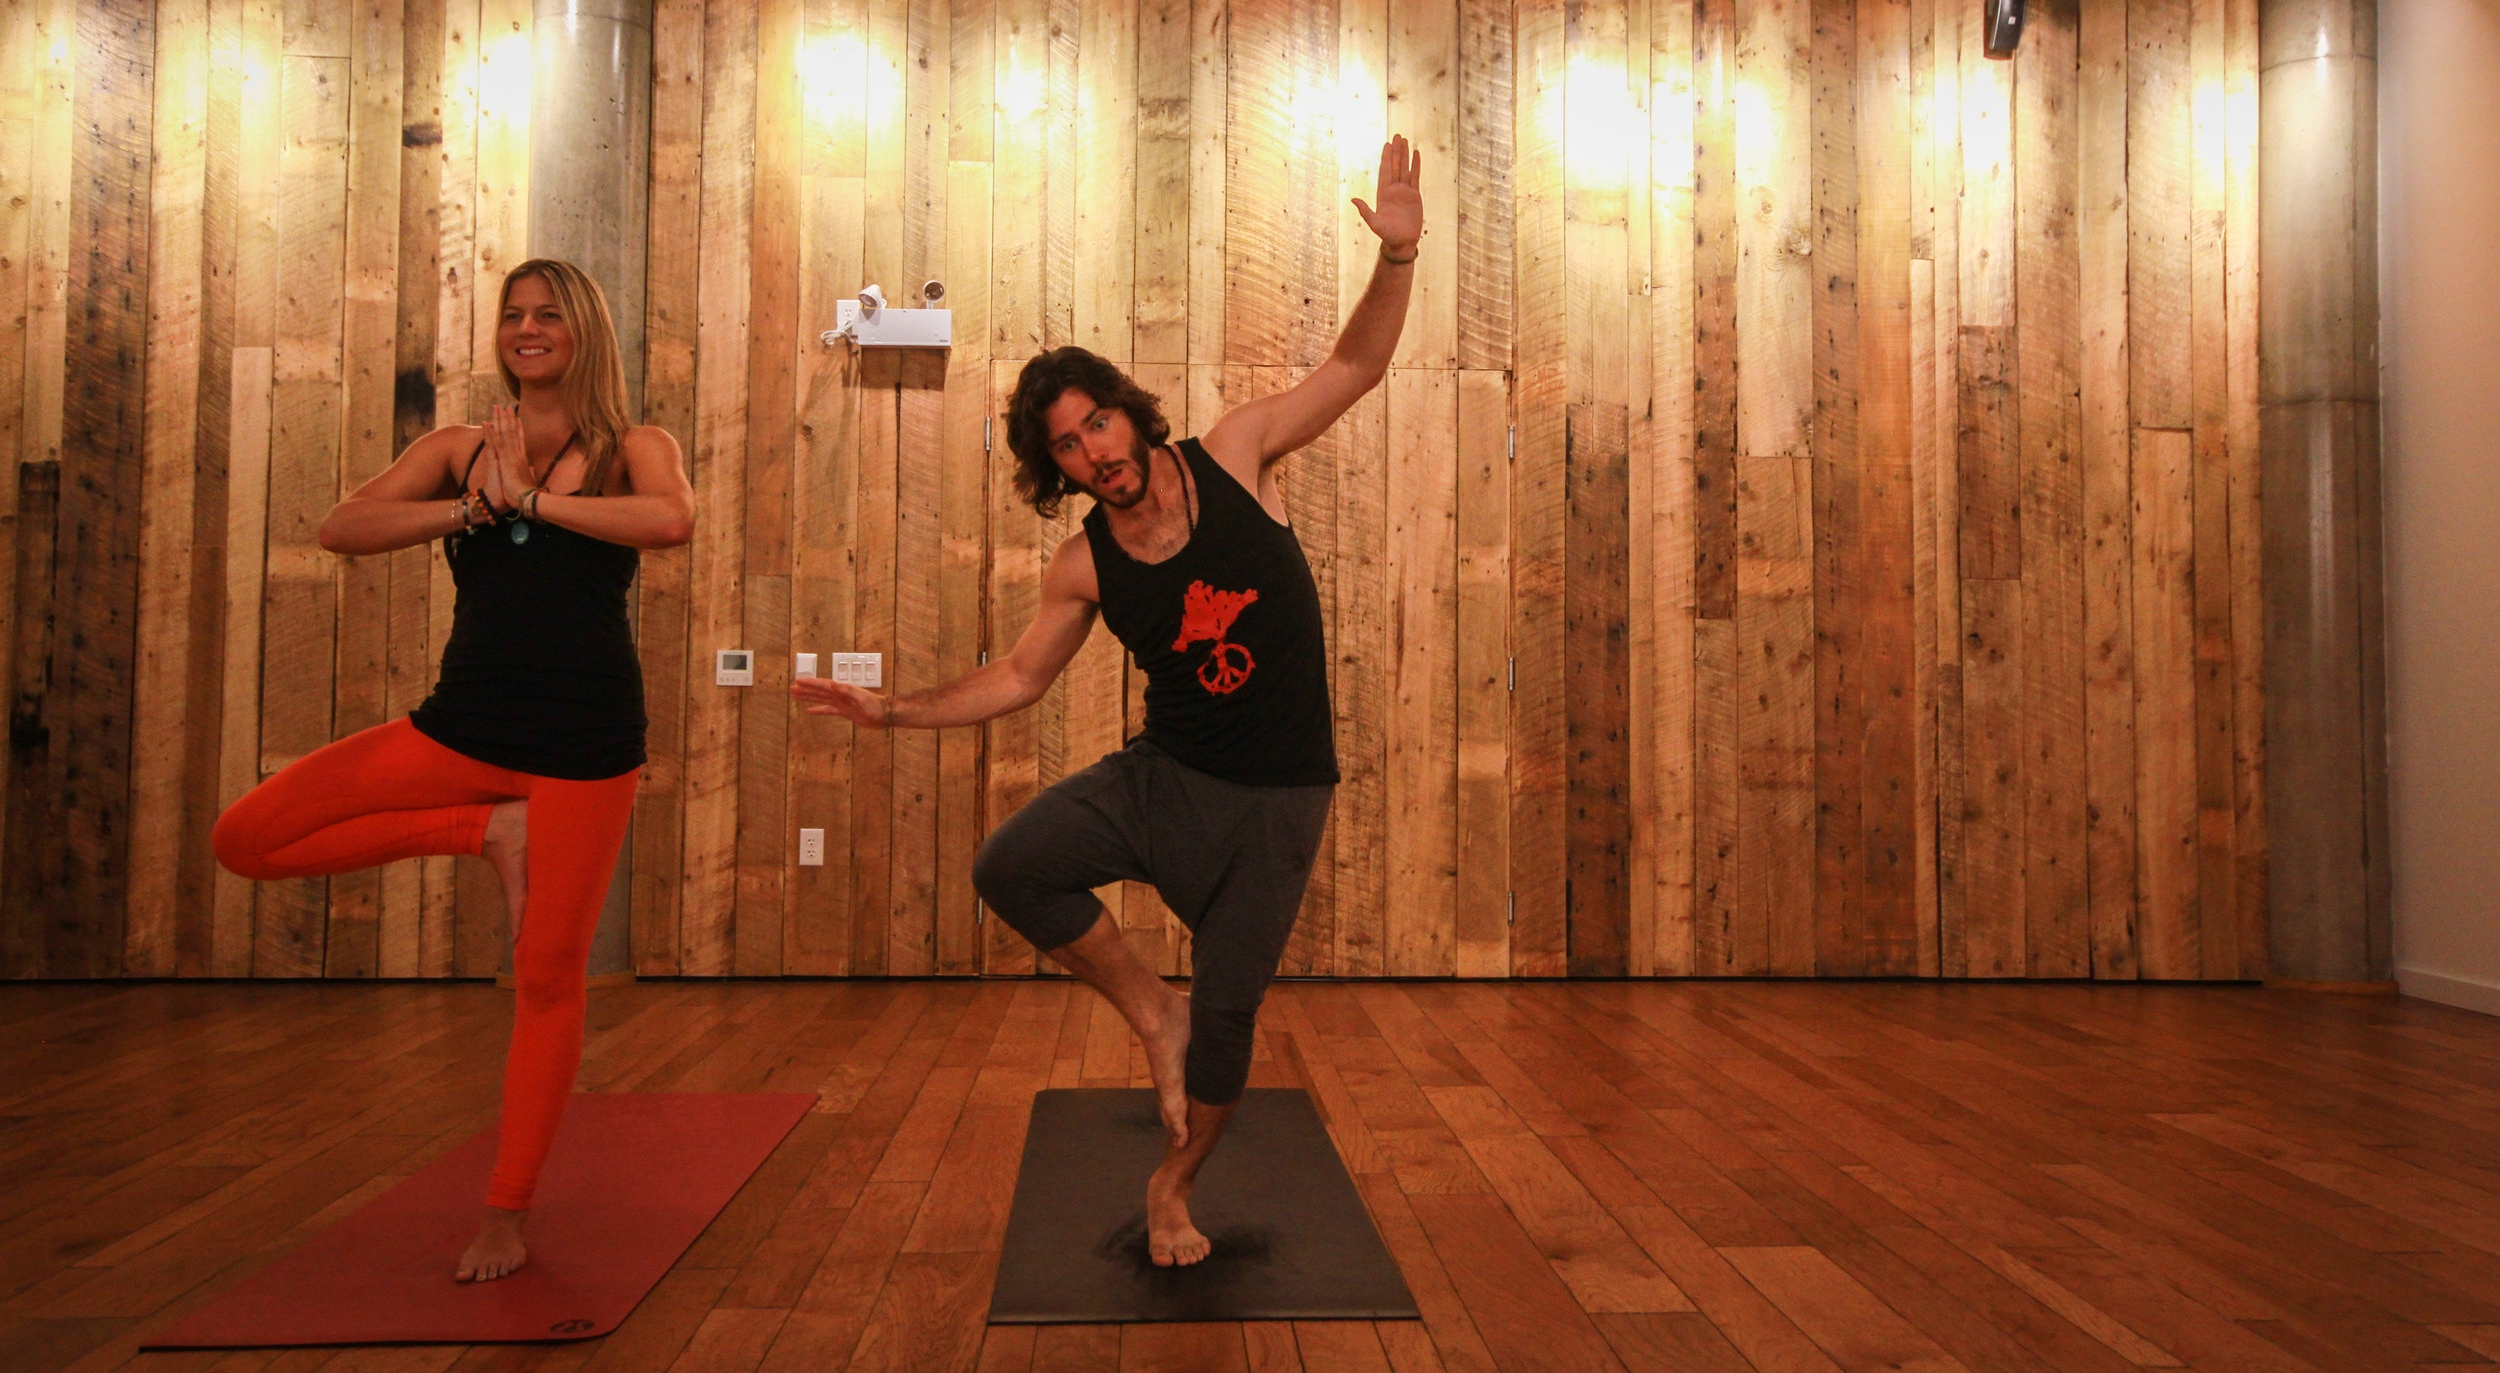 WE ALL HAVE TOSTART SOMEWHERE - Come Find Your Groove at Shanti